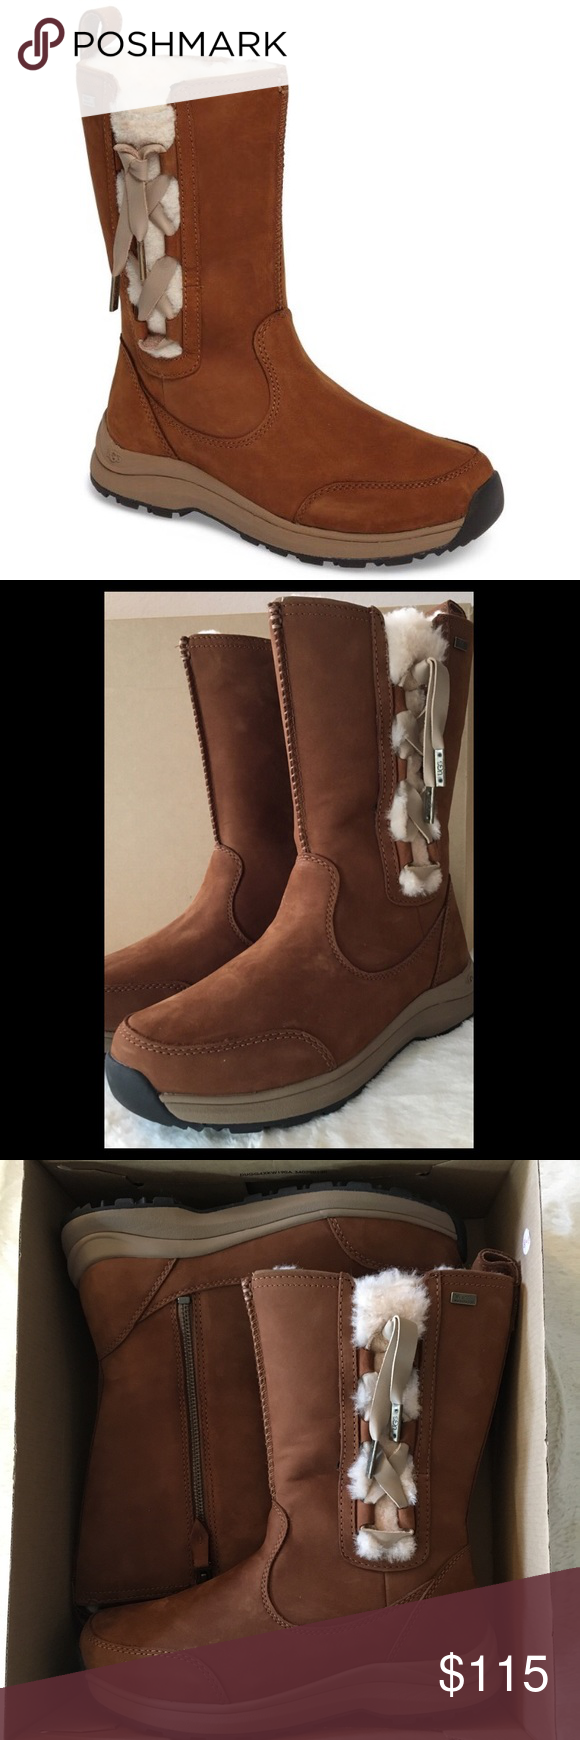 4ead9e20d1d Ugg Suvi Winter Boot in Chestnut BNIB Ugg winter boot with zipper ...